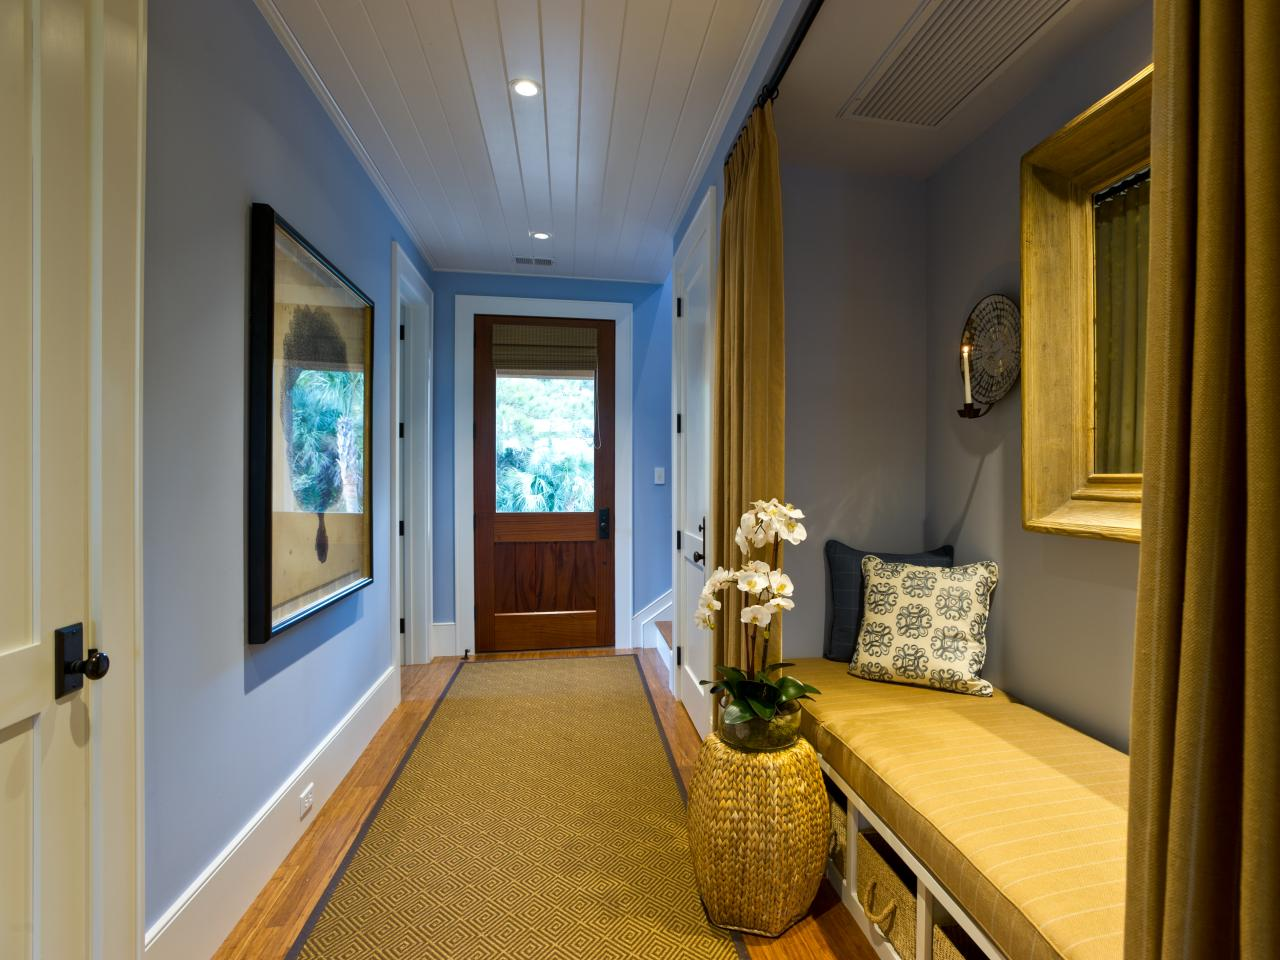 dh2013_entry-hall-05-wide-bench-epp0835_s4x3-jpg-rend-hgtvcom-1280-960